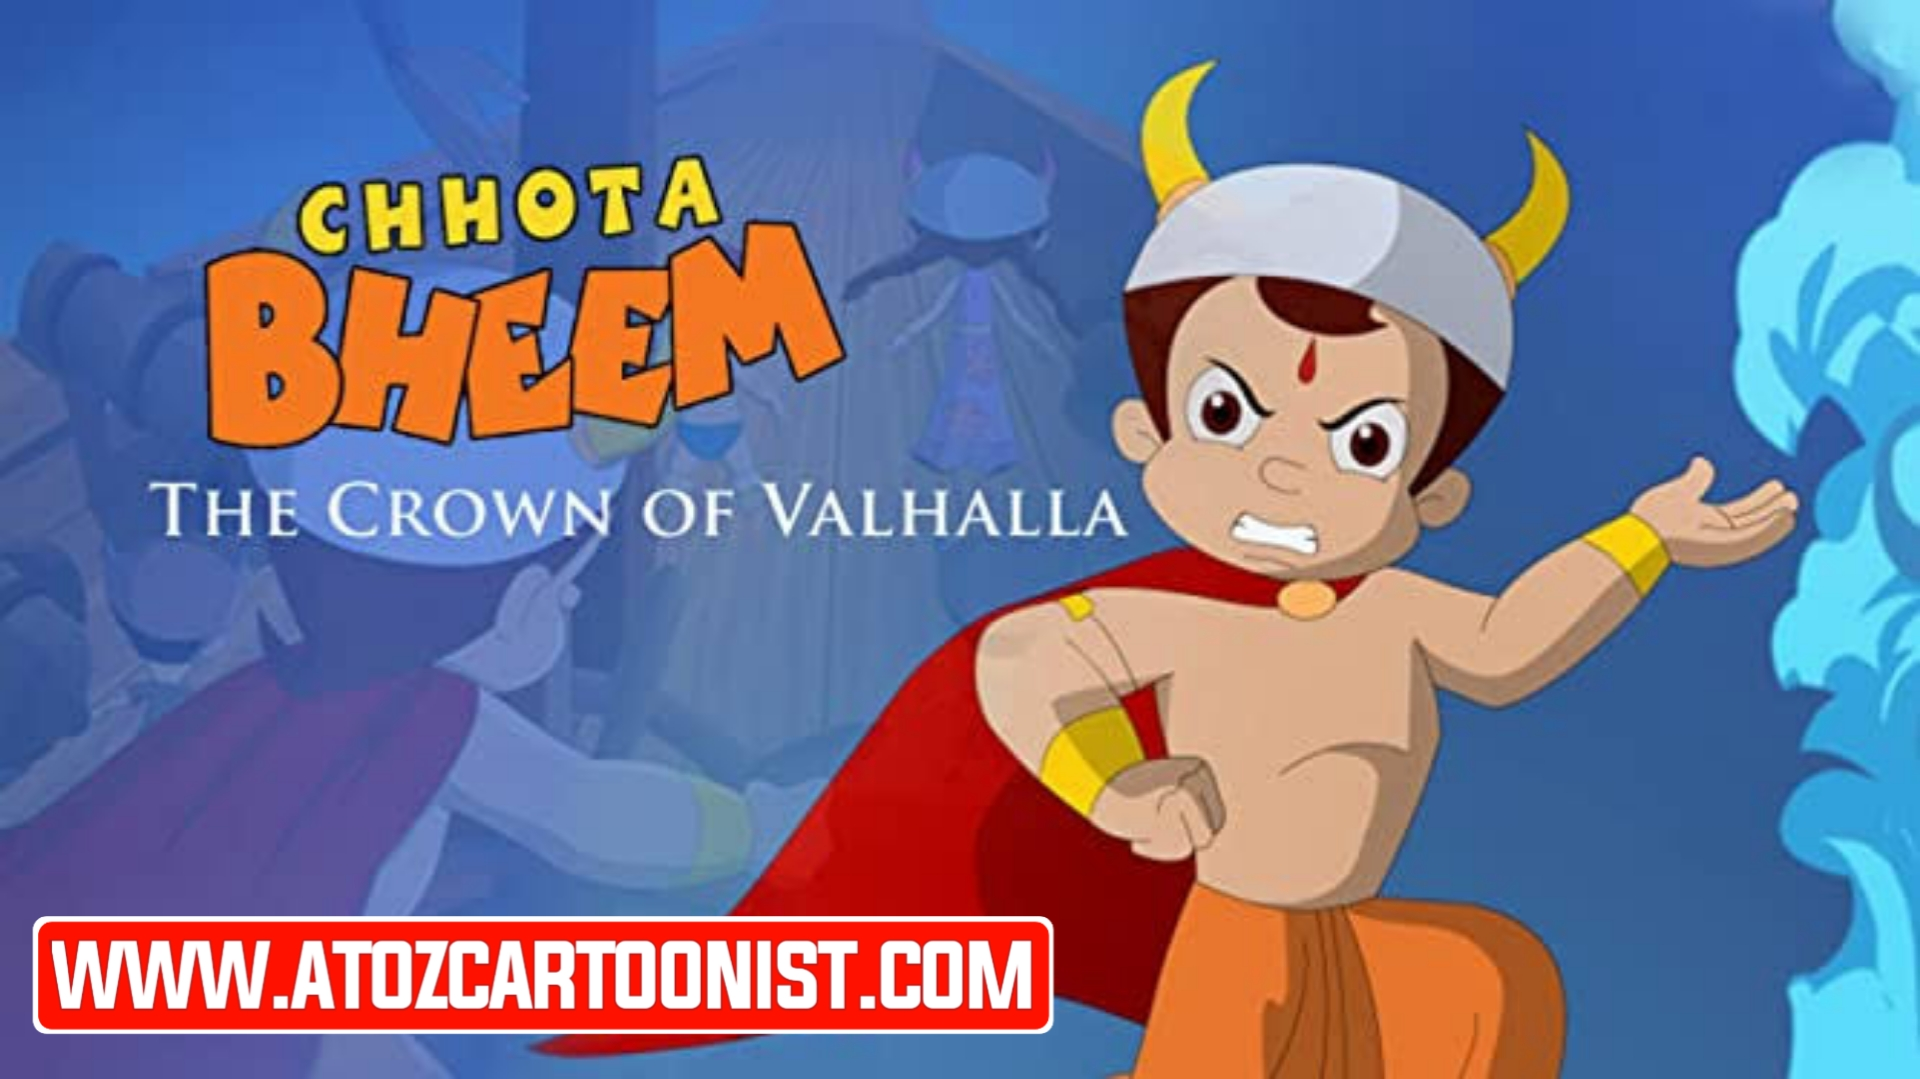 CHHOTA BHEEM AND THE CROWN OF VALHALLA FULL MOVIE IN HINDI & TAMIL DOWNLOAD (480P, 720P & 1080P)